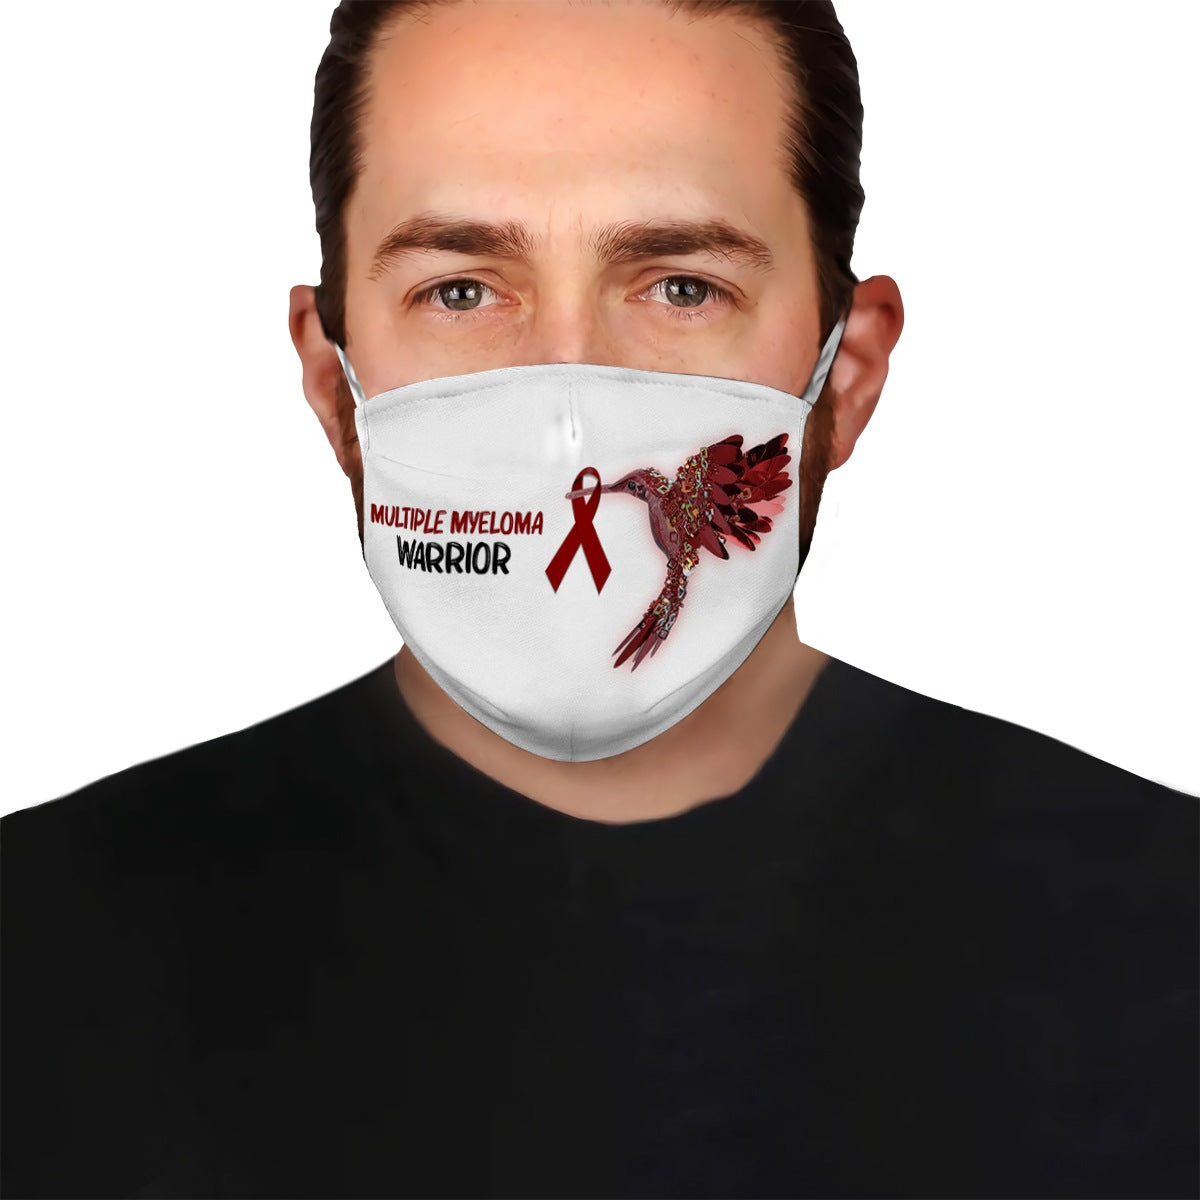 Multiple Myeloma Hummingbird EZ10 1704 Face Mask White - Hyperfavor